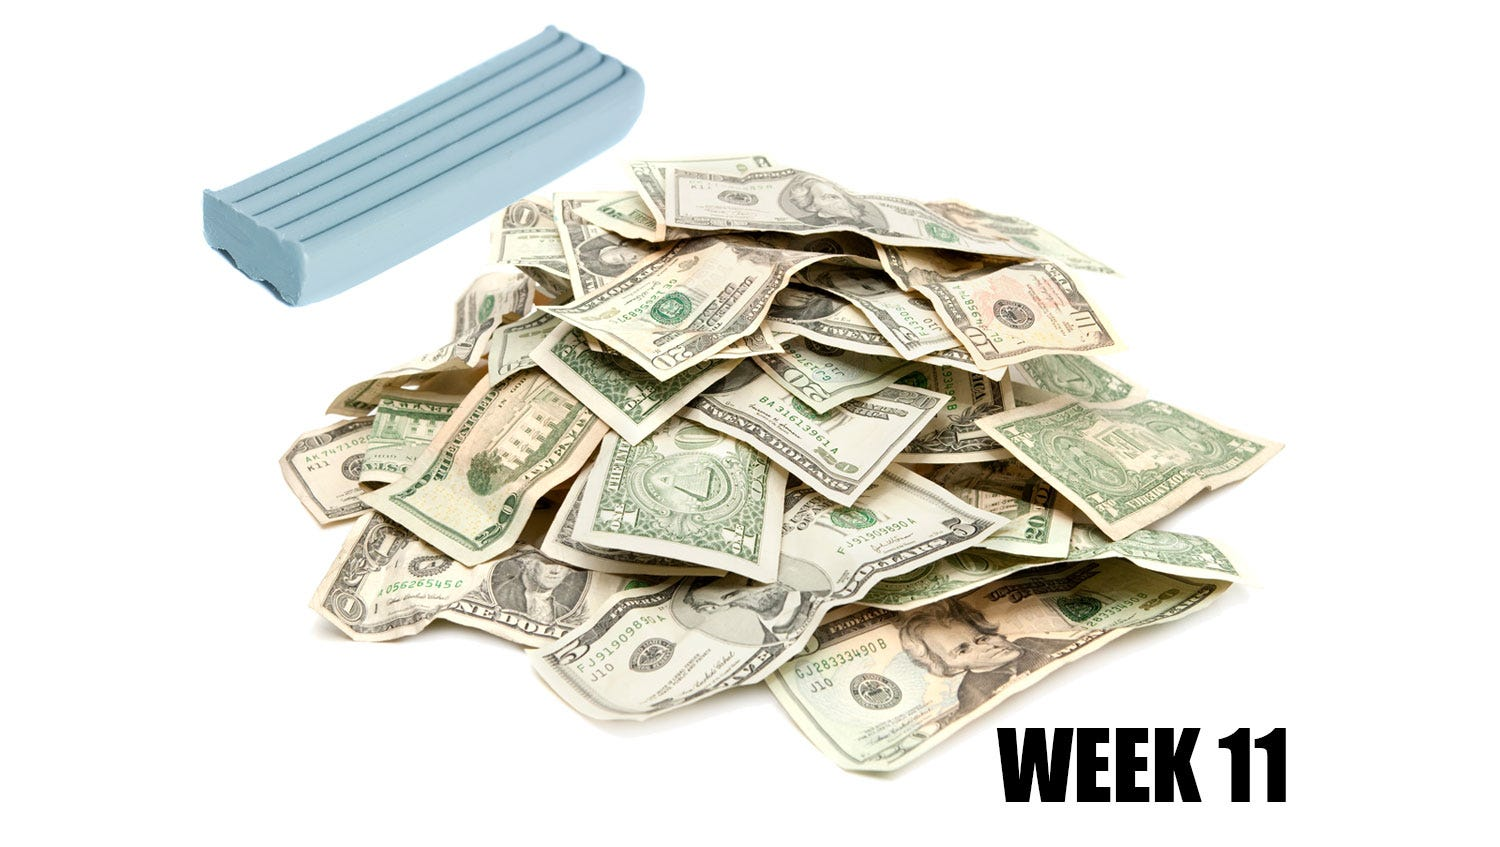 Week 11: Stash away some small bills in your kit